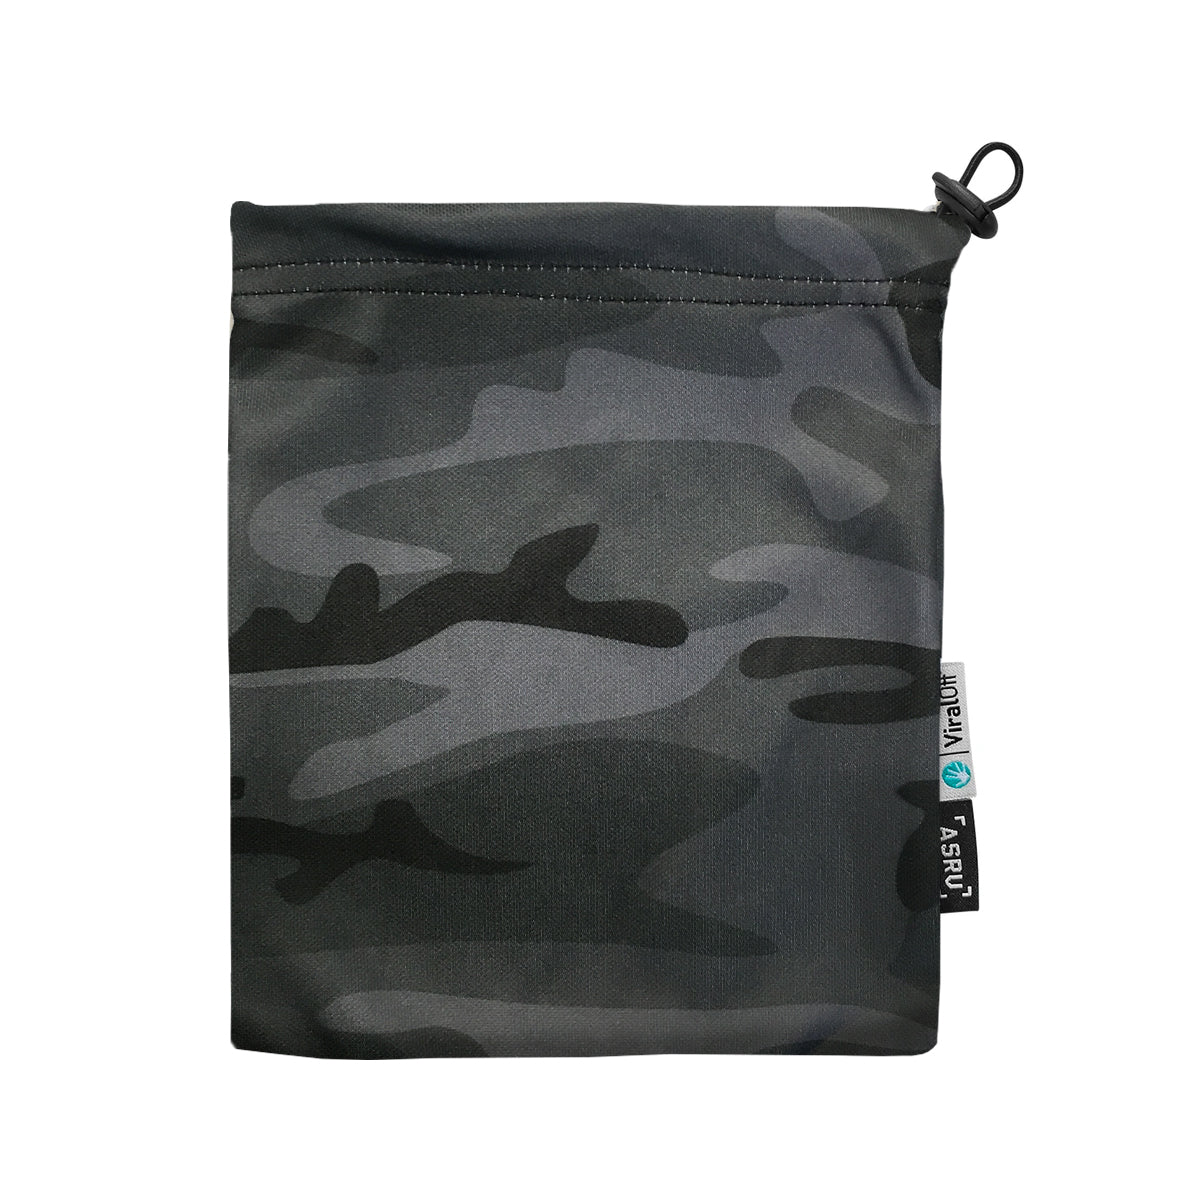 0383. ViralOff® Form-Fitting Face Mask (2 Pack with Bag) - Midnight Camo